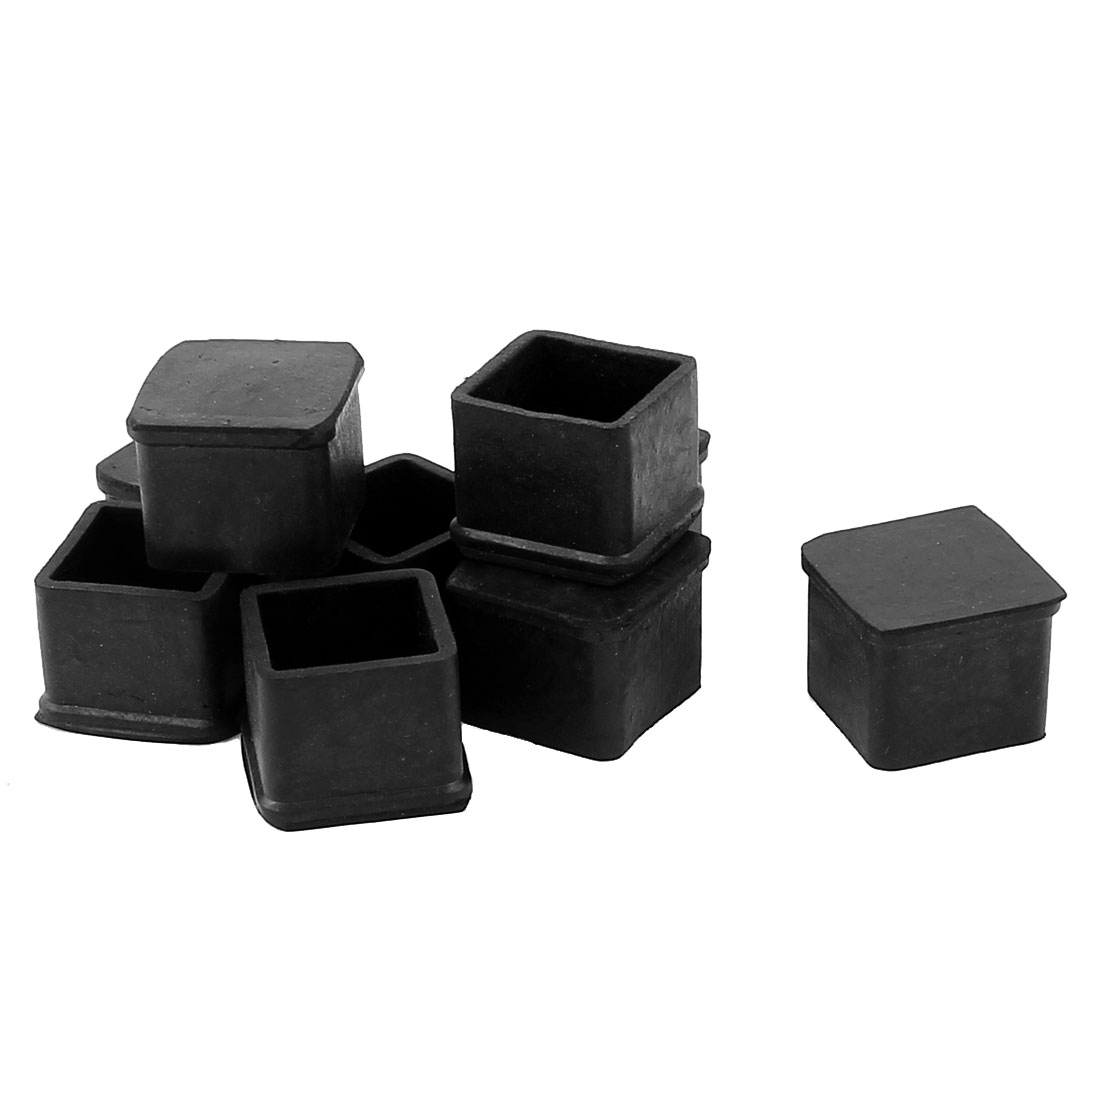 9 Pcs Black Square Chair Table Leg Foot Rubber Covers Protectors 24mm x 24mm